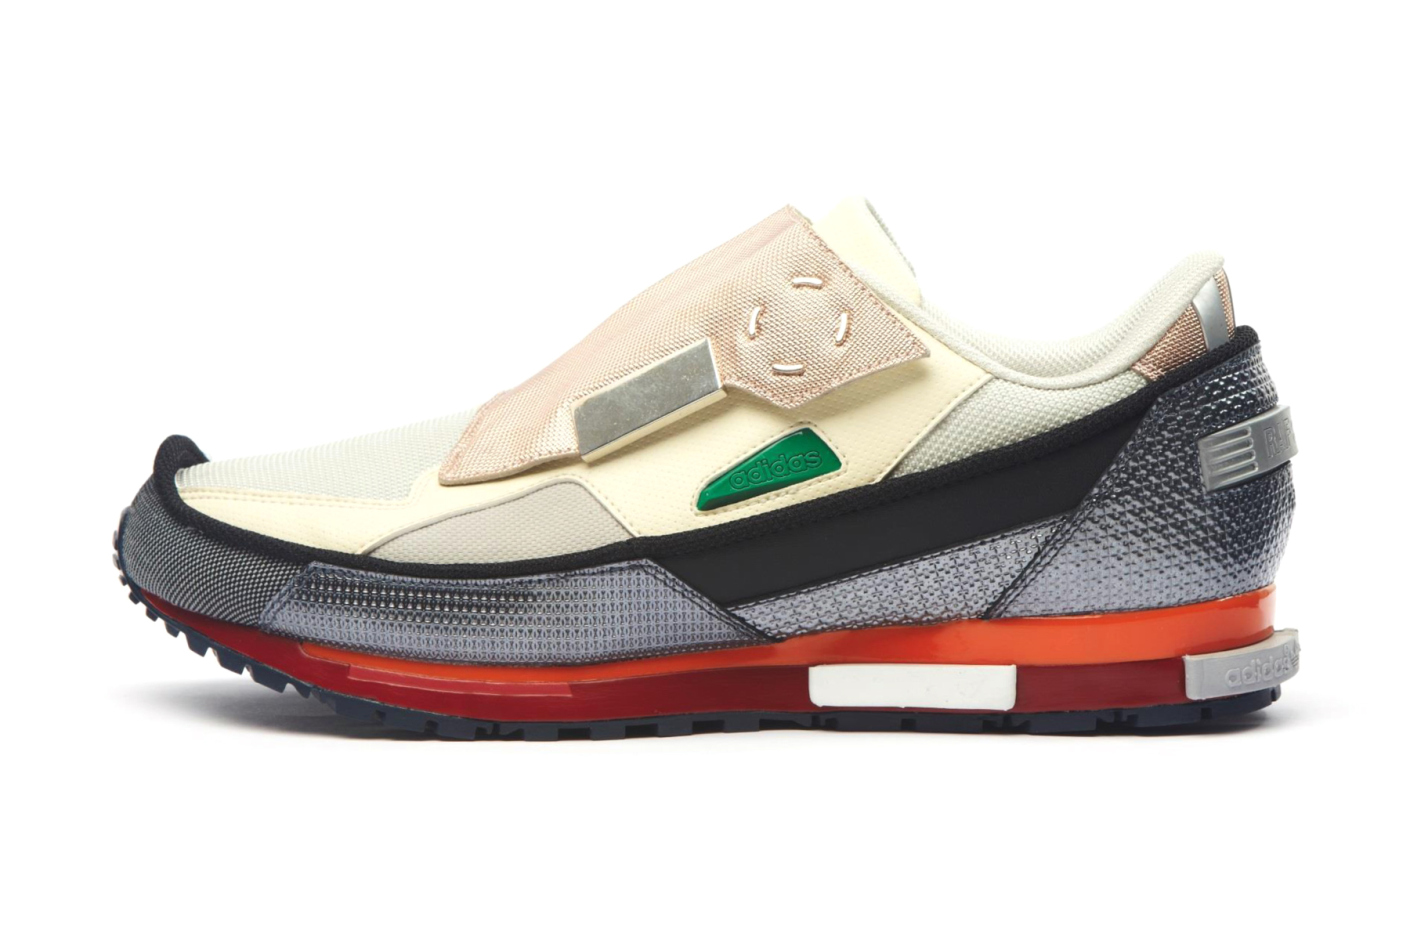 raf simons for adidas fall winter collection 9 Raf Simons for Adidas Fall/Winter 2014 Footwear Collection